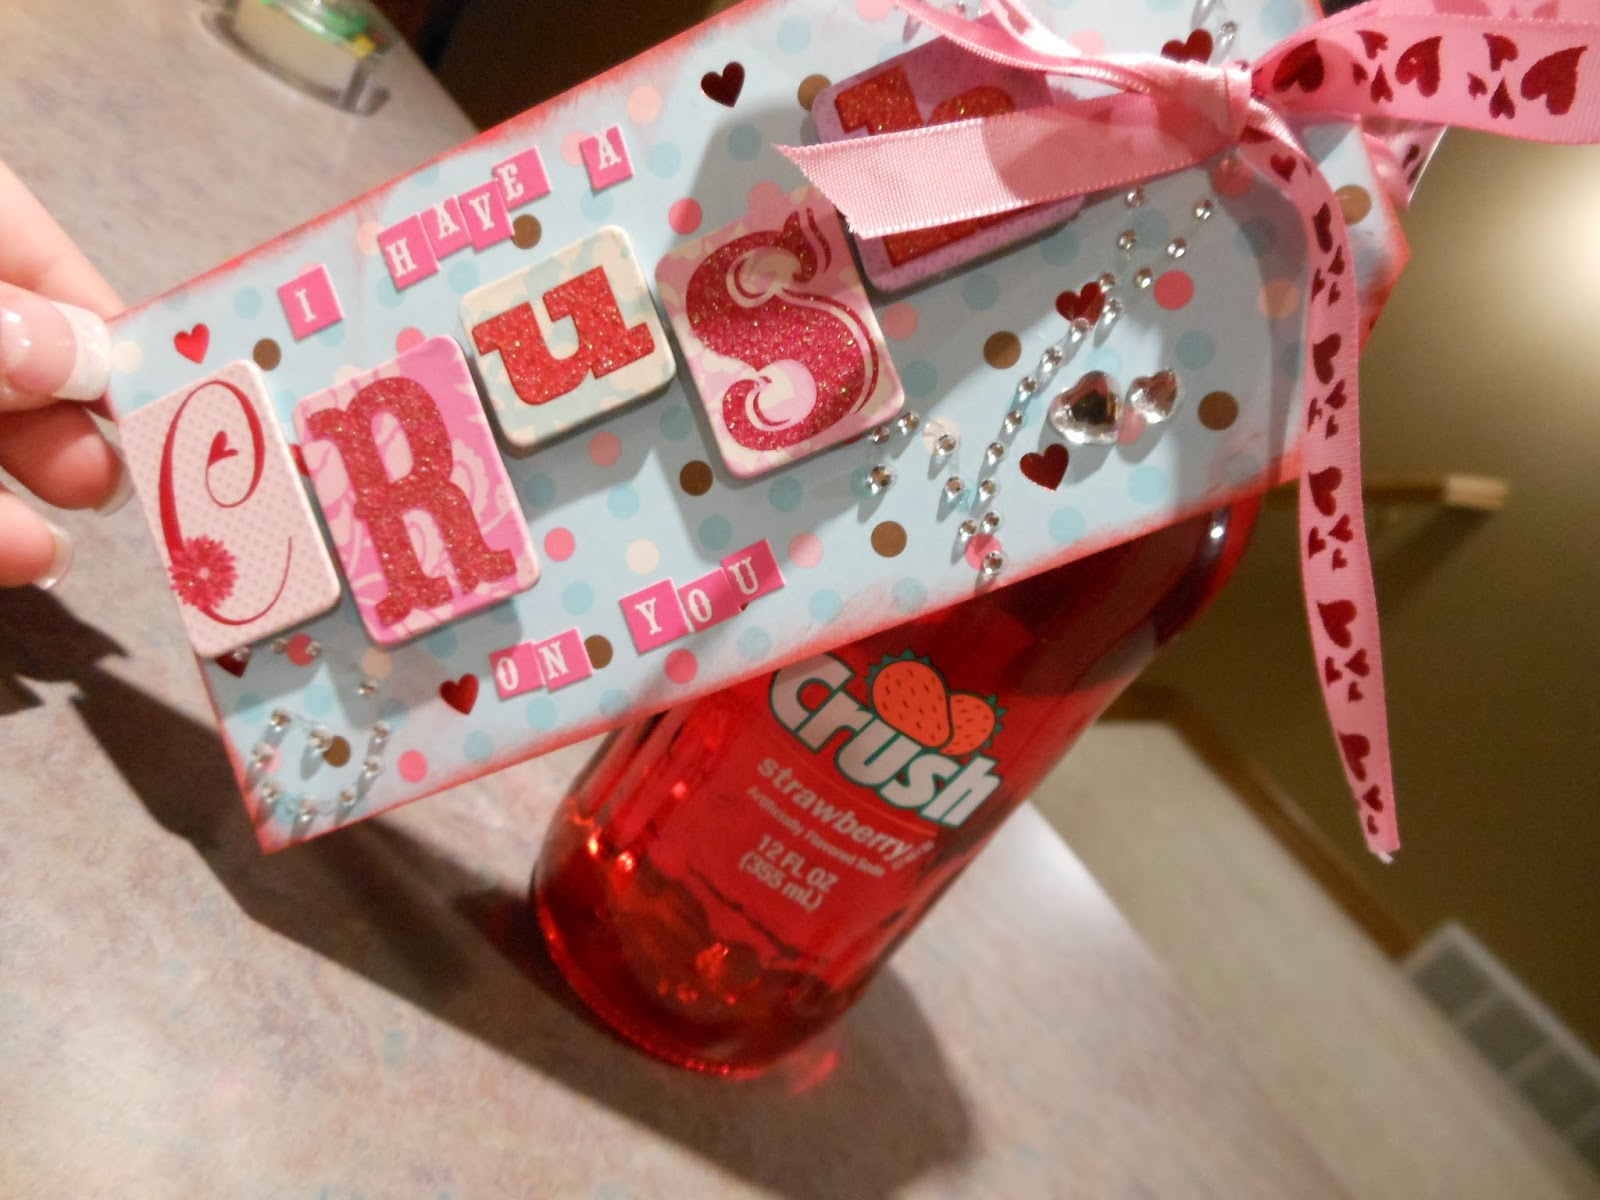 Best Valentine's Day Gifts Ideas for Crush 2020 On A Budget